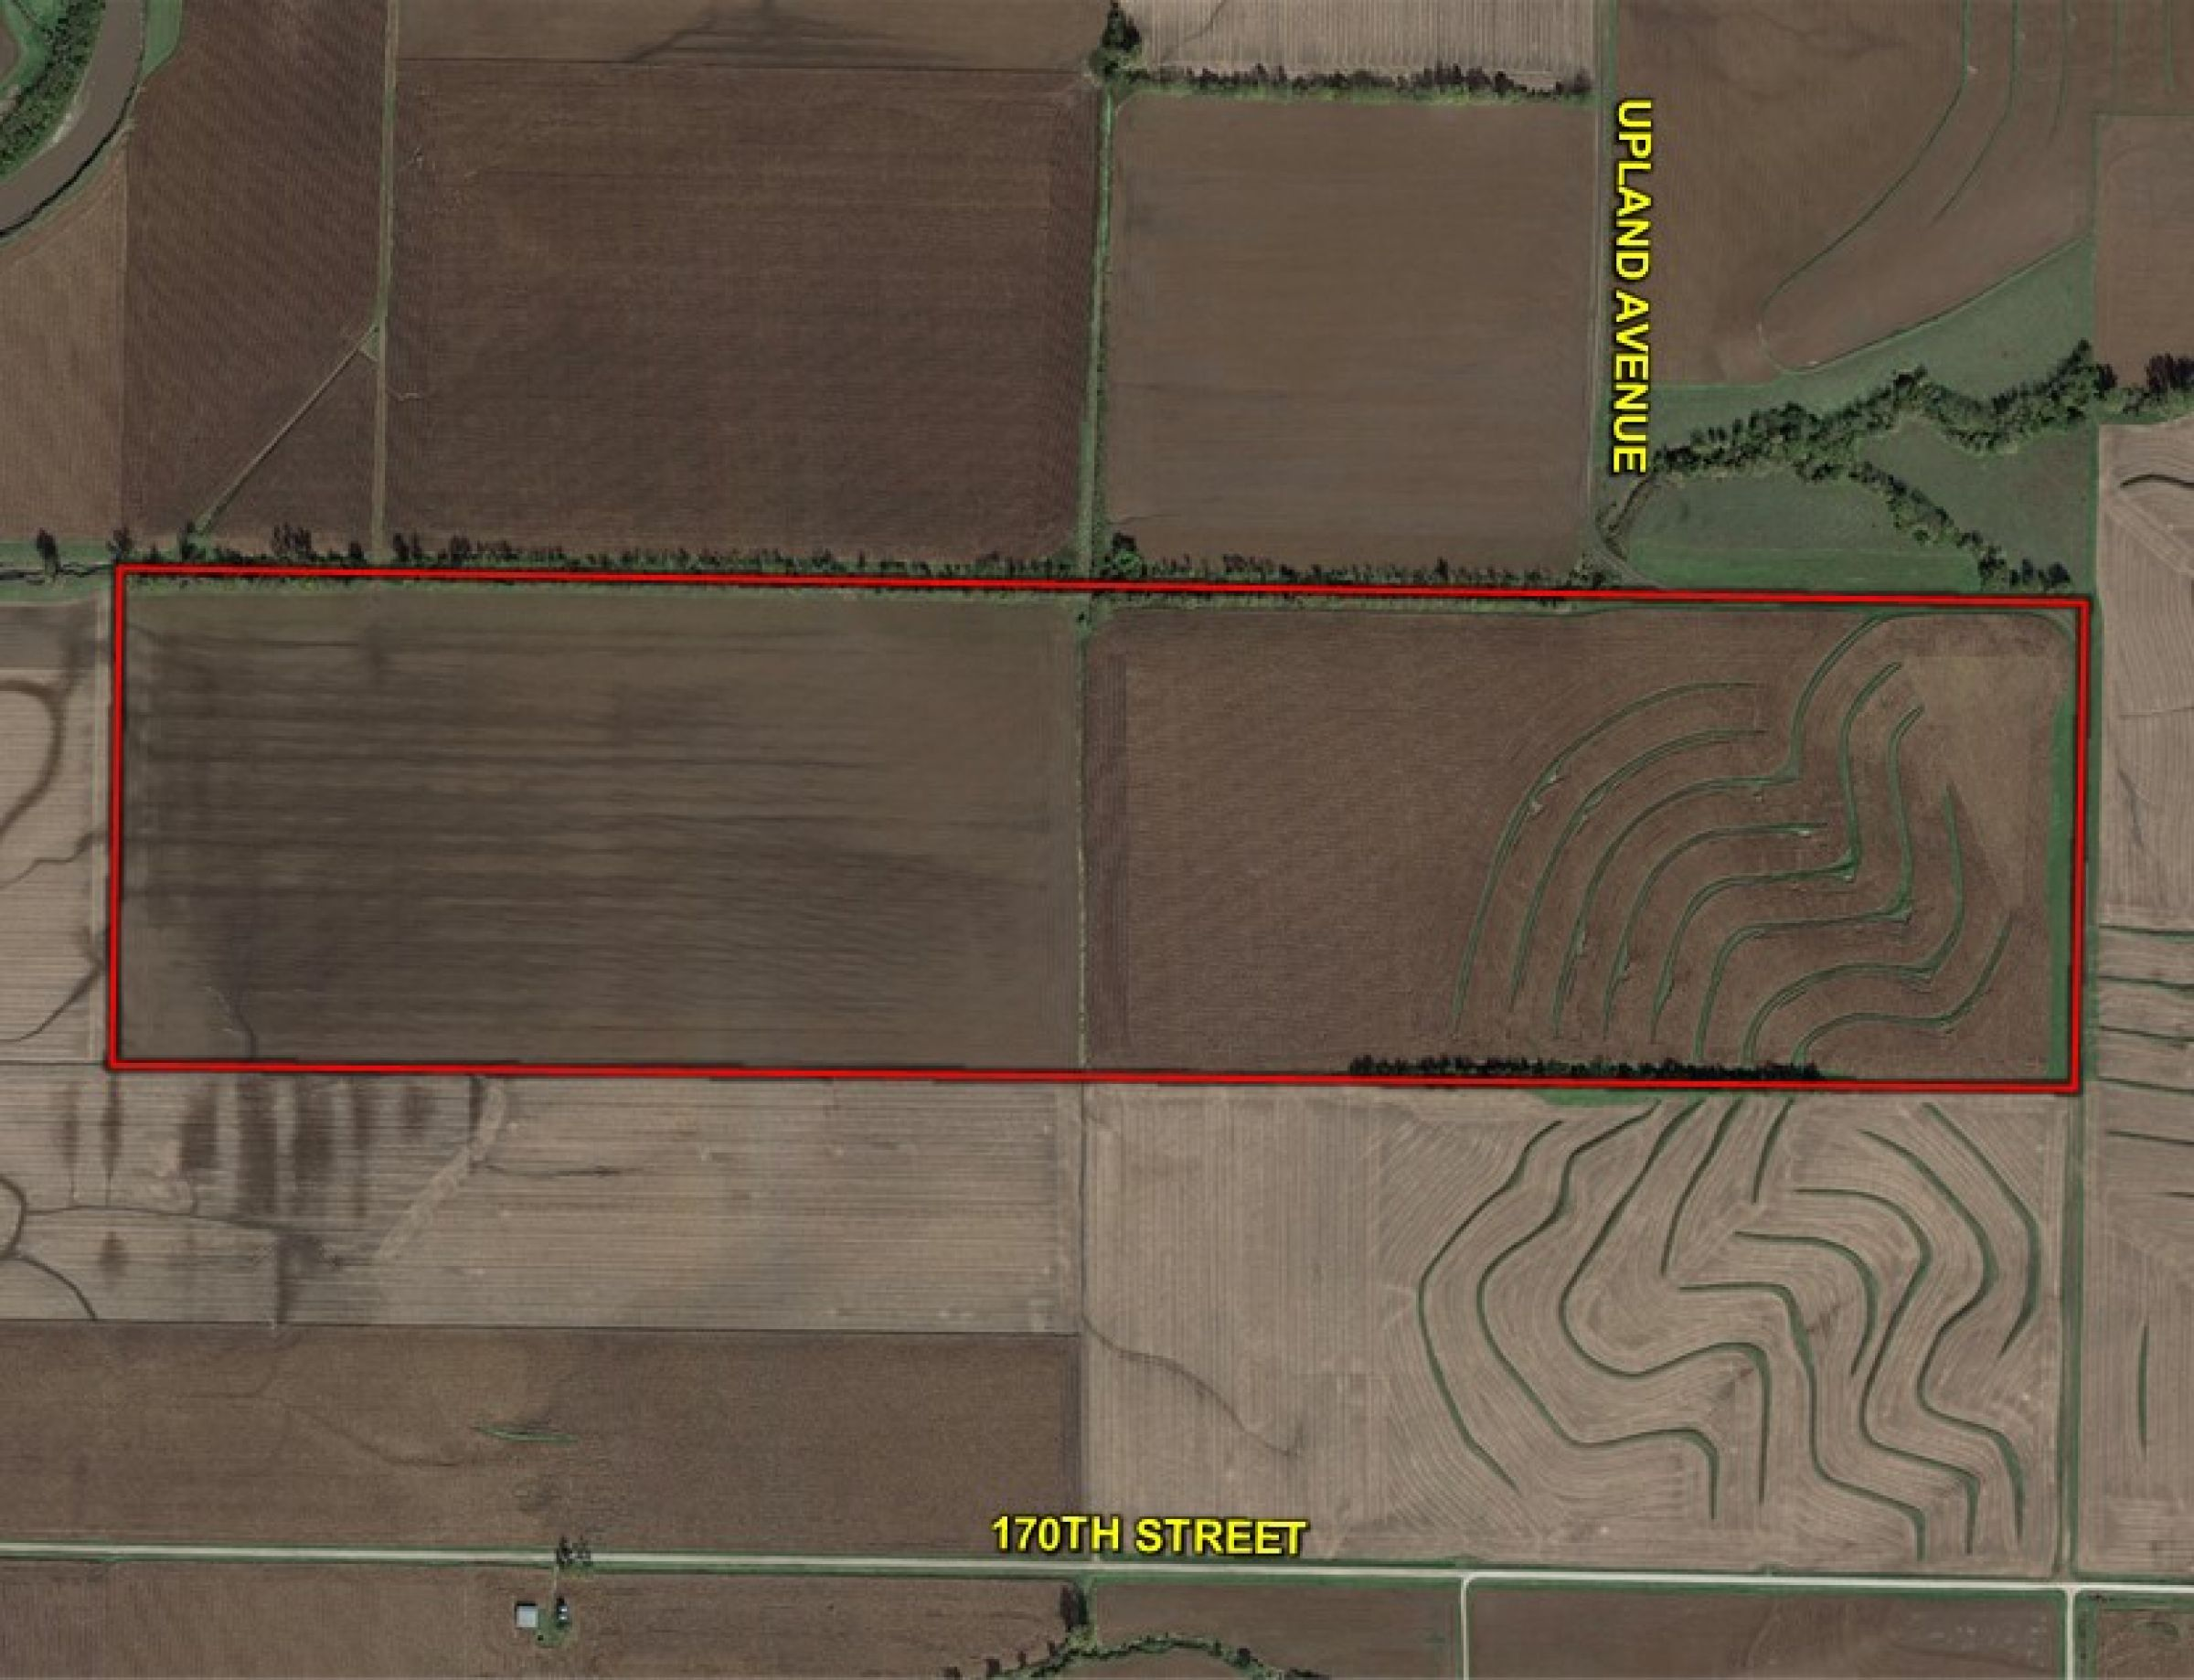 land-page-county-iowa-160-acres-listing-number-14980-0-2020-04-28-173004.jpg